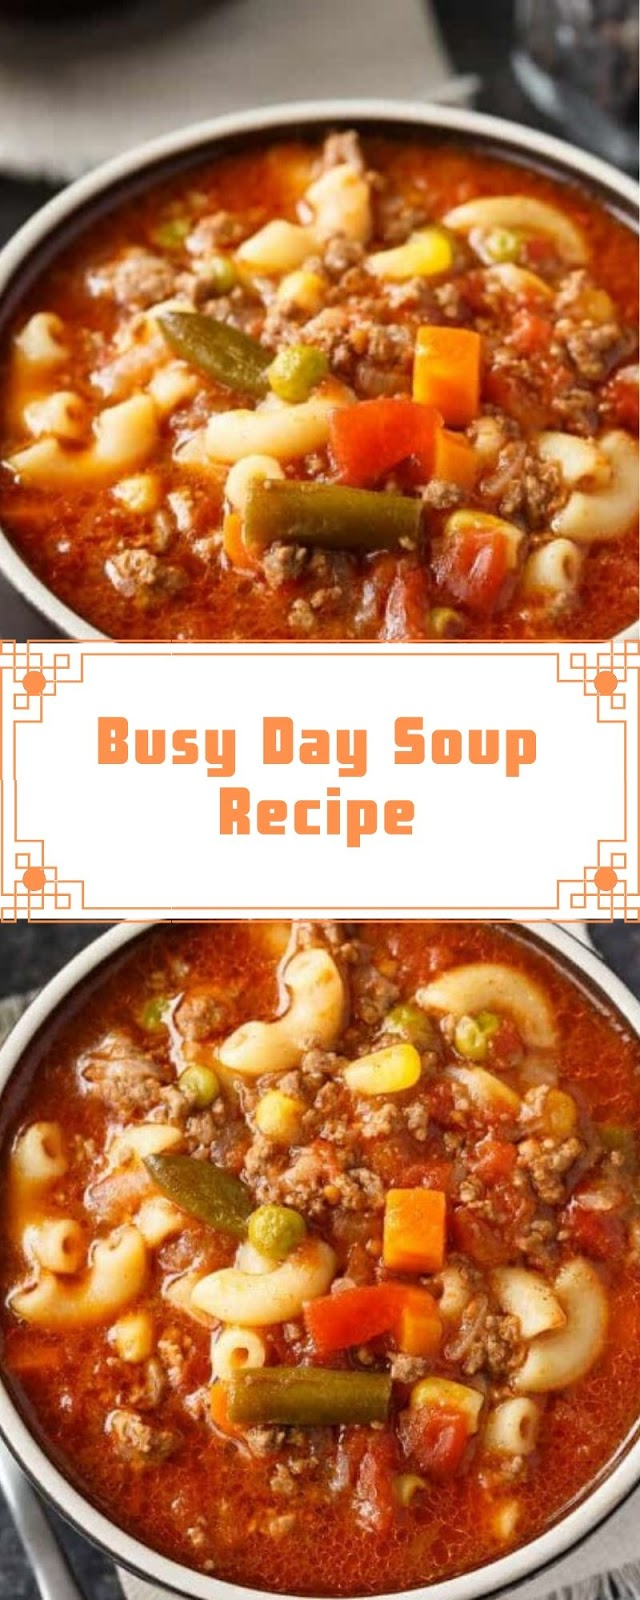 Busy Day Soup Recipe